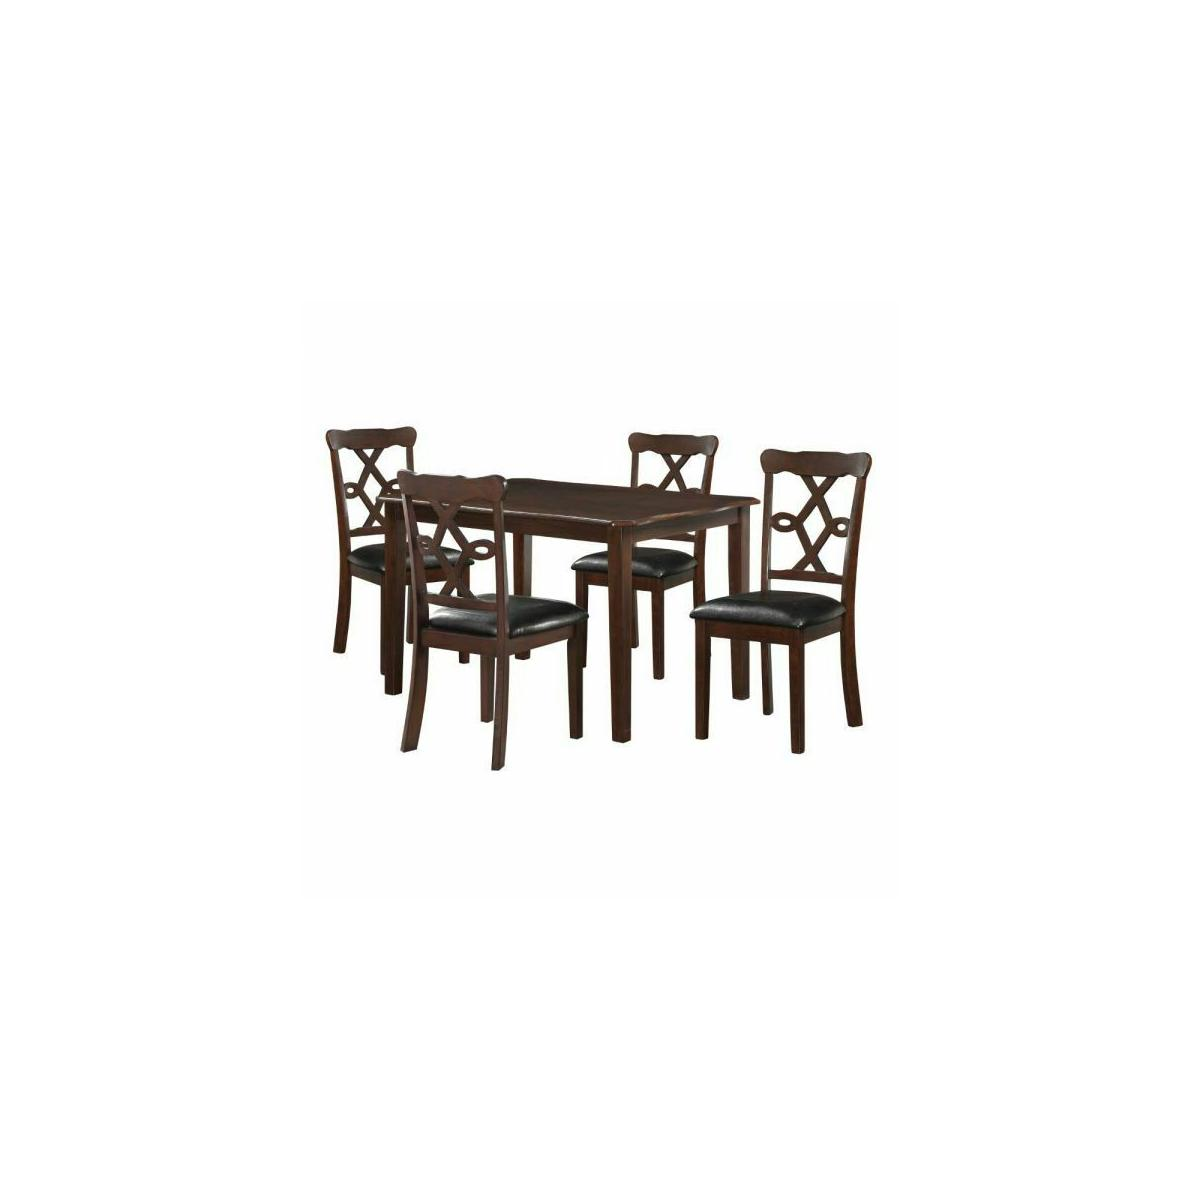 ACME Ingeborg 5Pc Pack Dining Set - 71835 - Black PU & Espresso